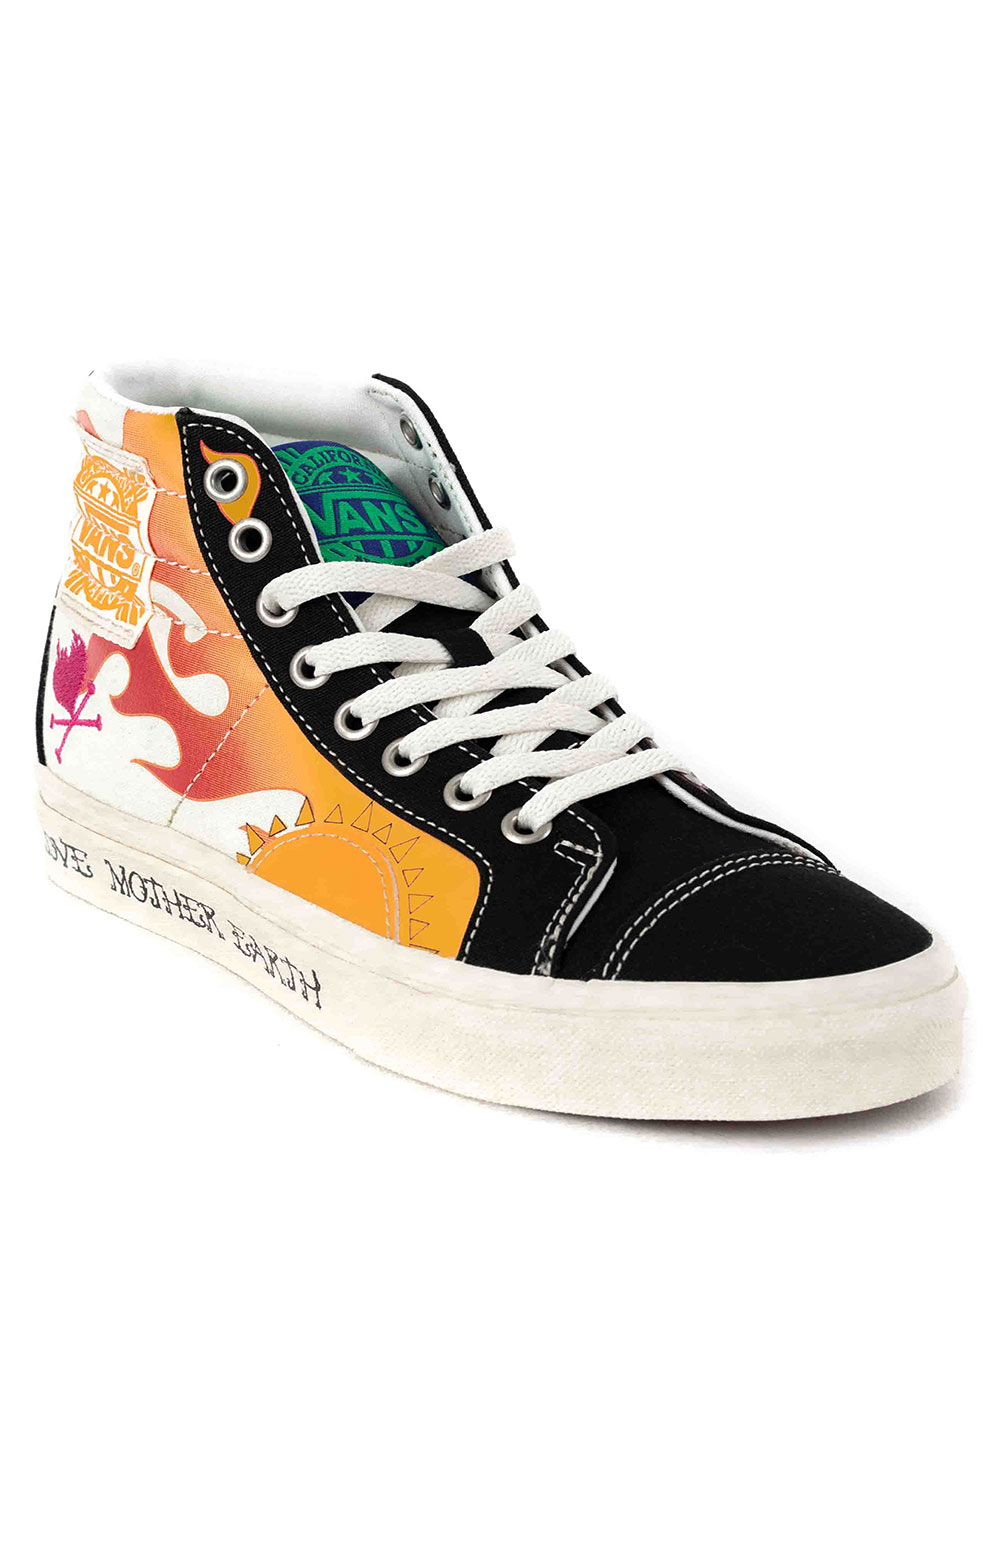 (JFIWZ2) Mother Earth Style 238 Shoes - Elements Marshmallow  3